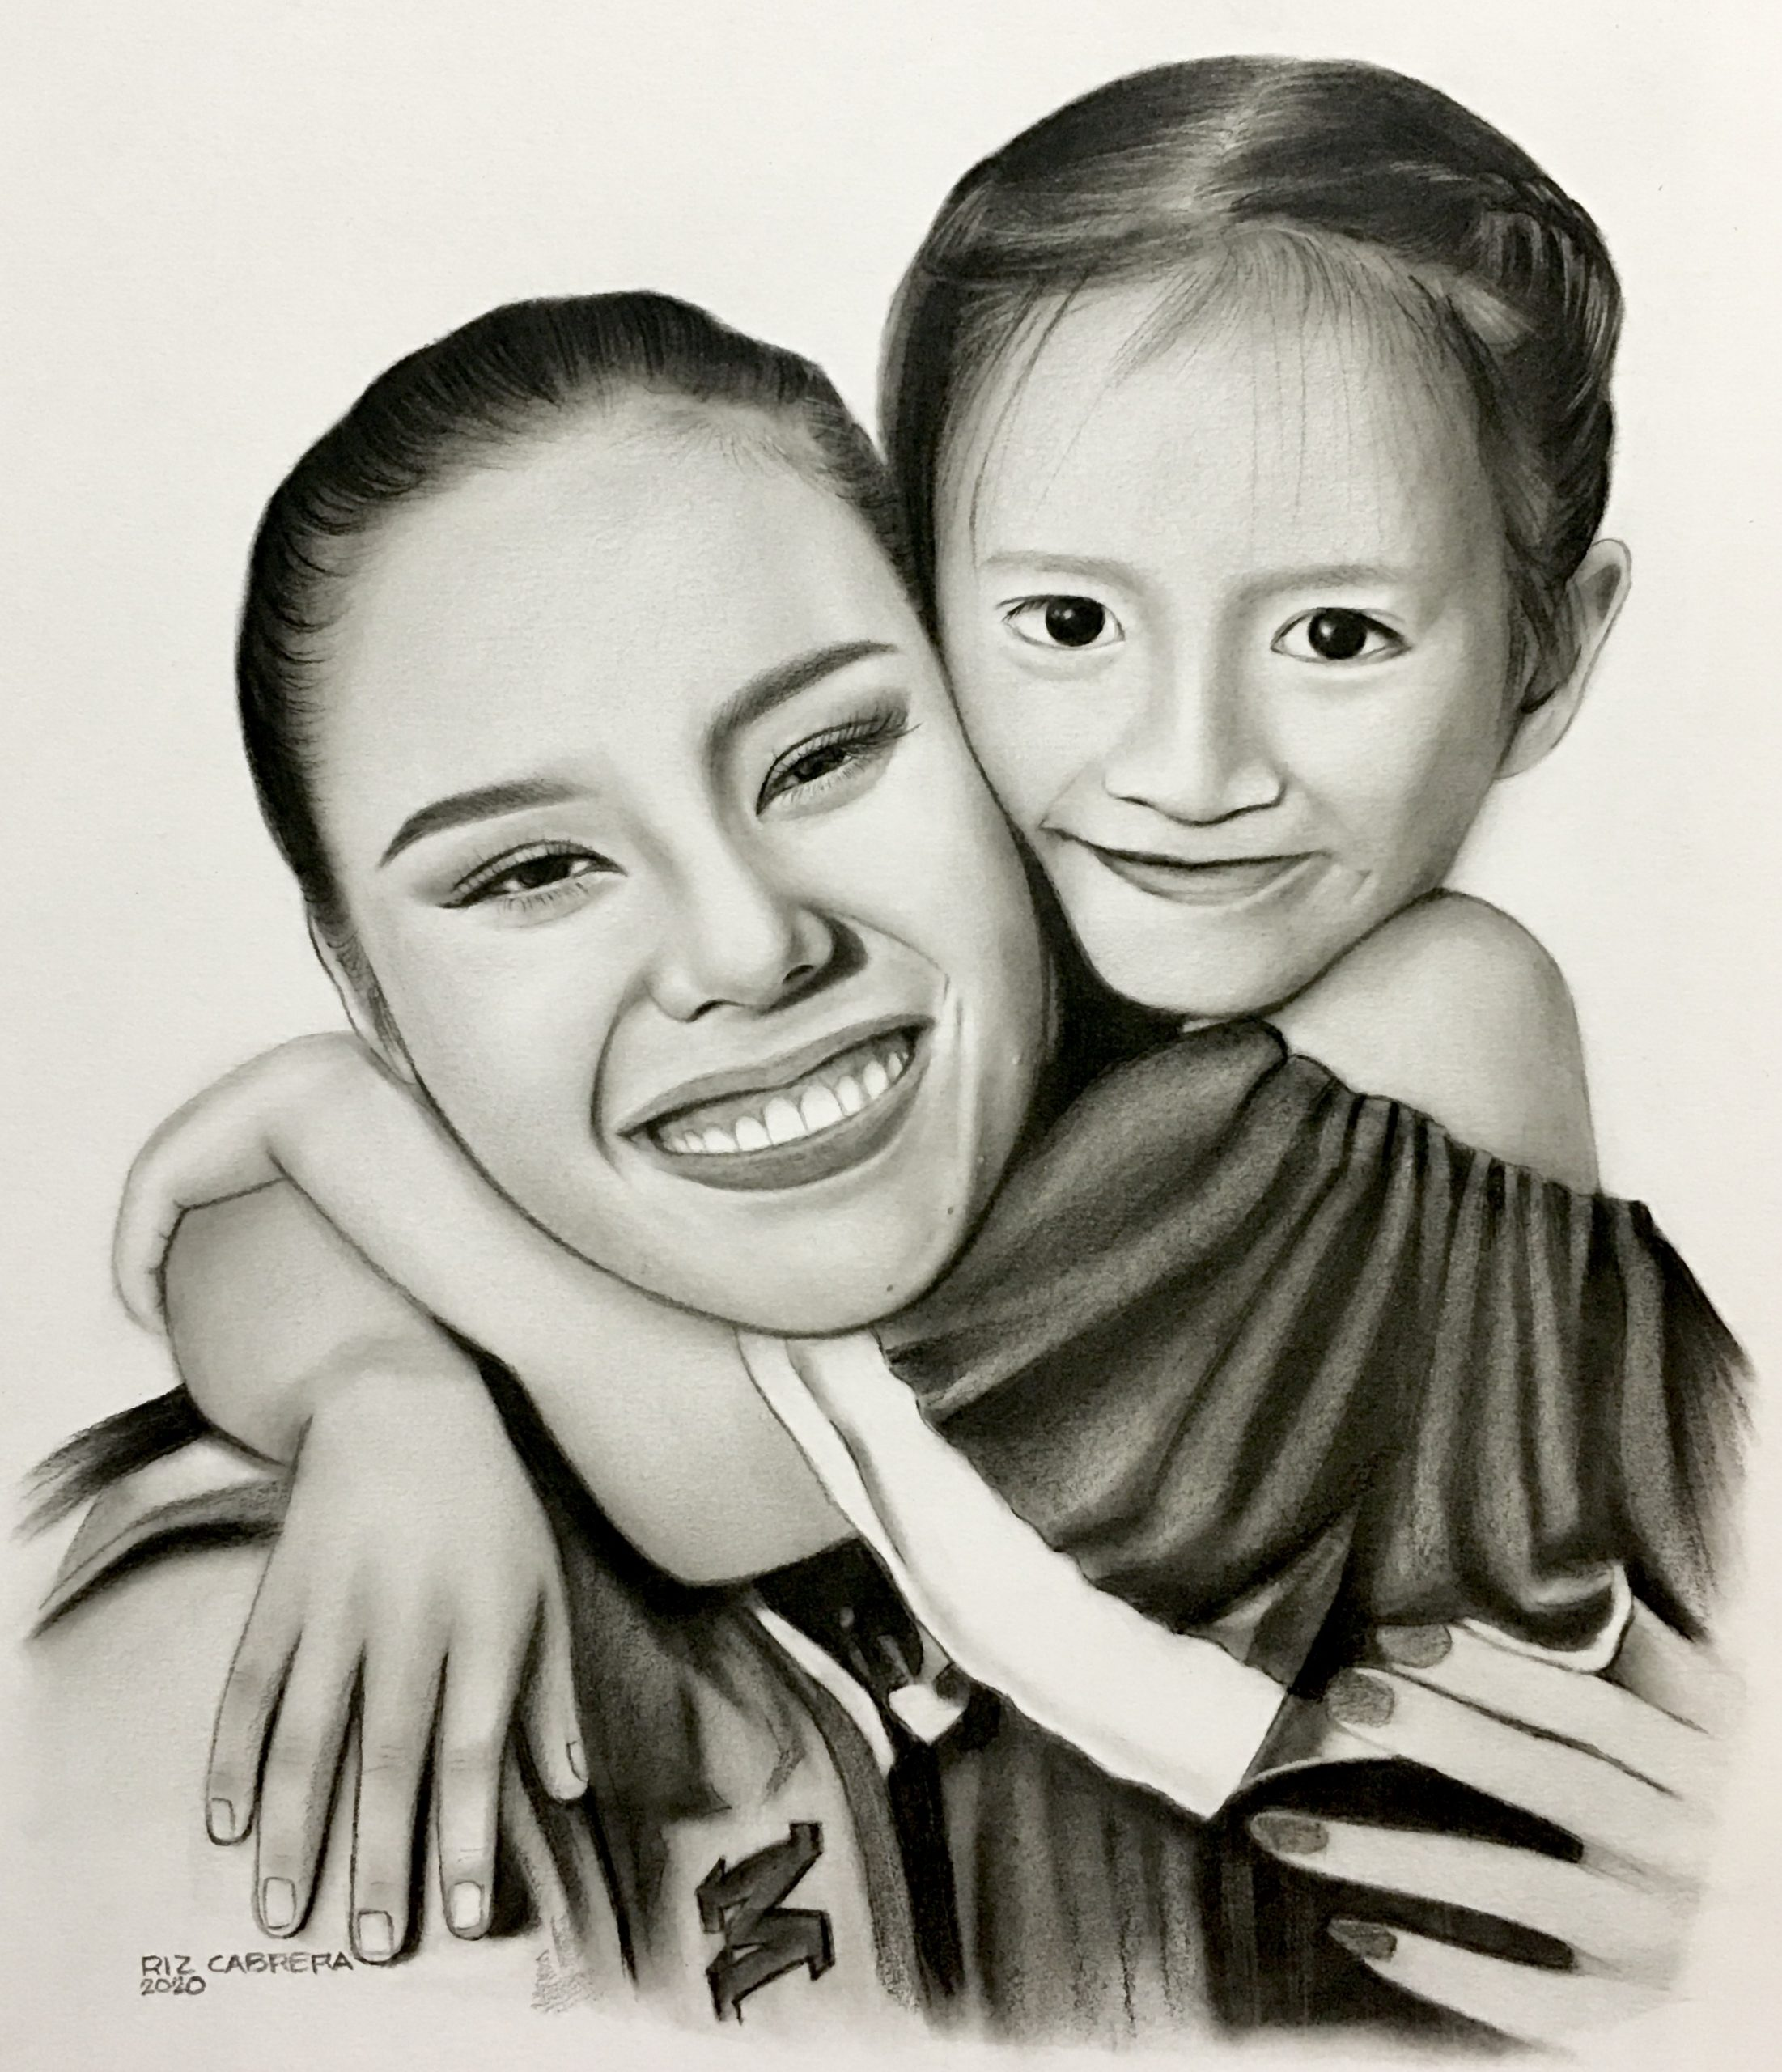 Baguio-based Artist, Riz Cabrera, launches online art auction for Smile Train Philippines